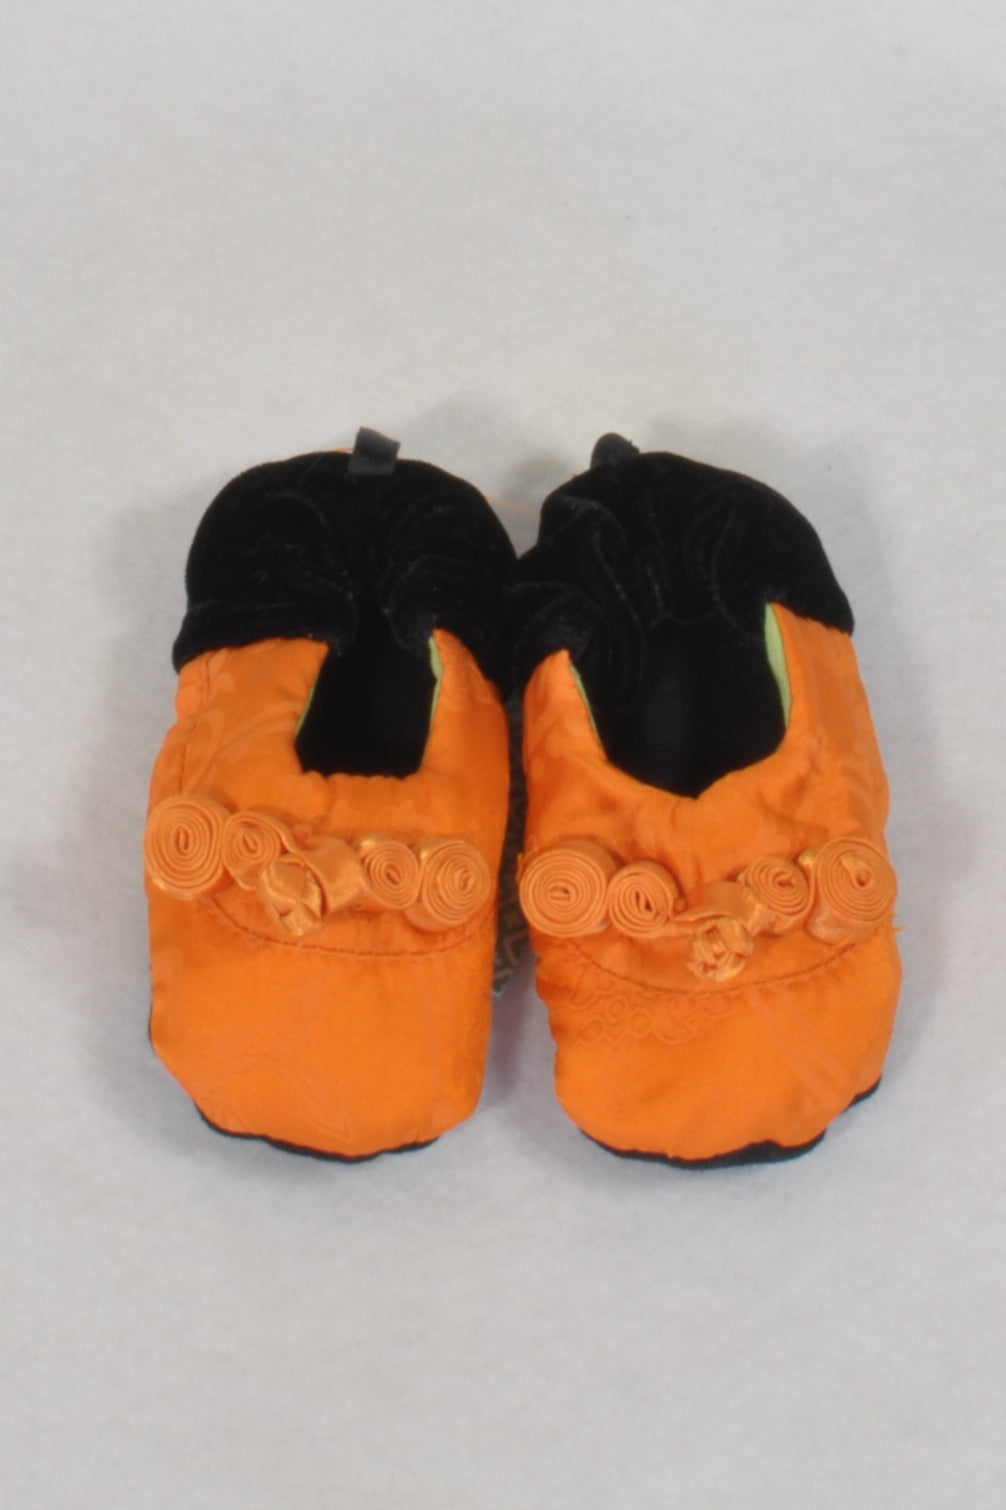 New Unknown Brand  Asian Orange And Black Velvet Softsole  Shoes Girls 3-6 months